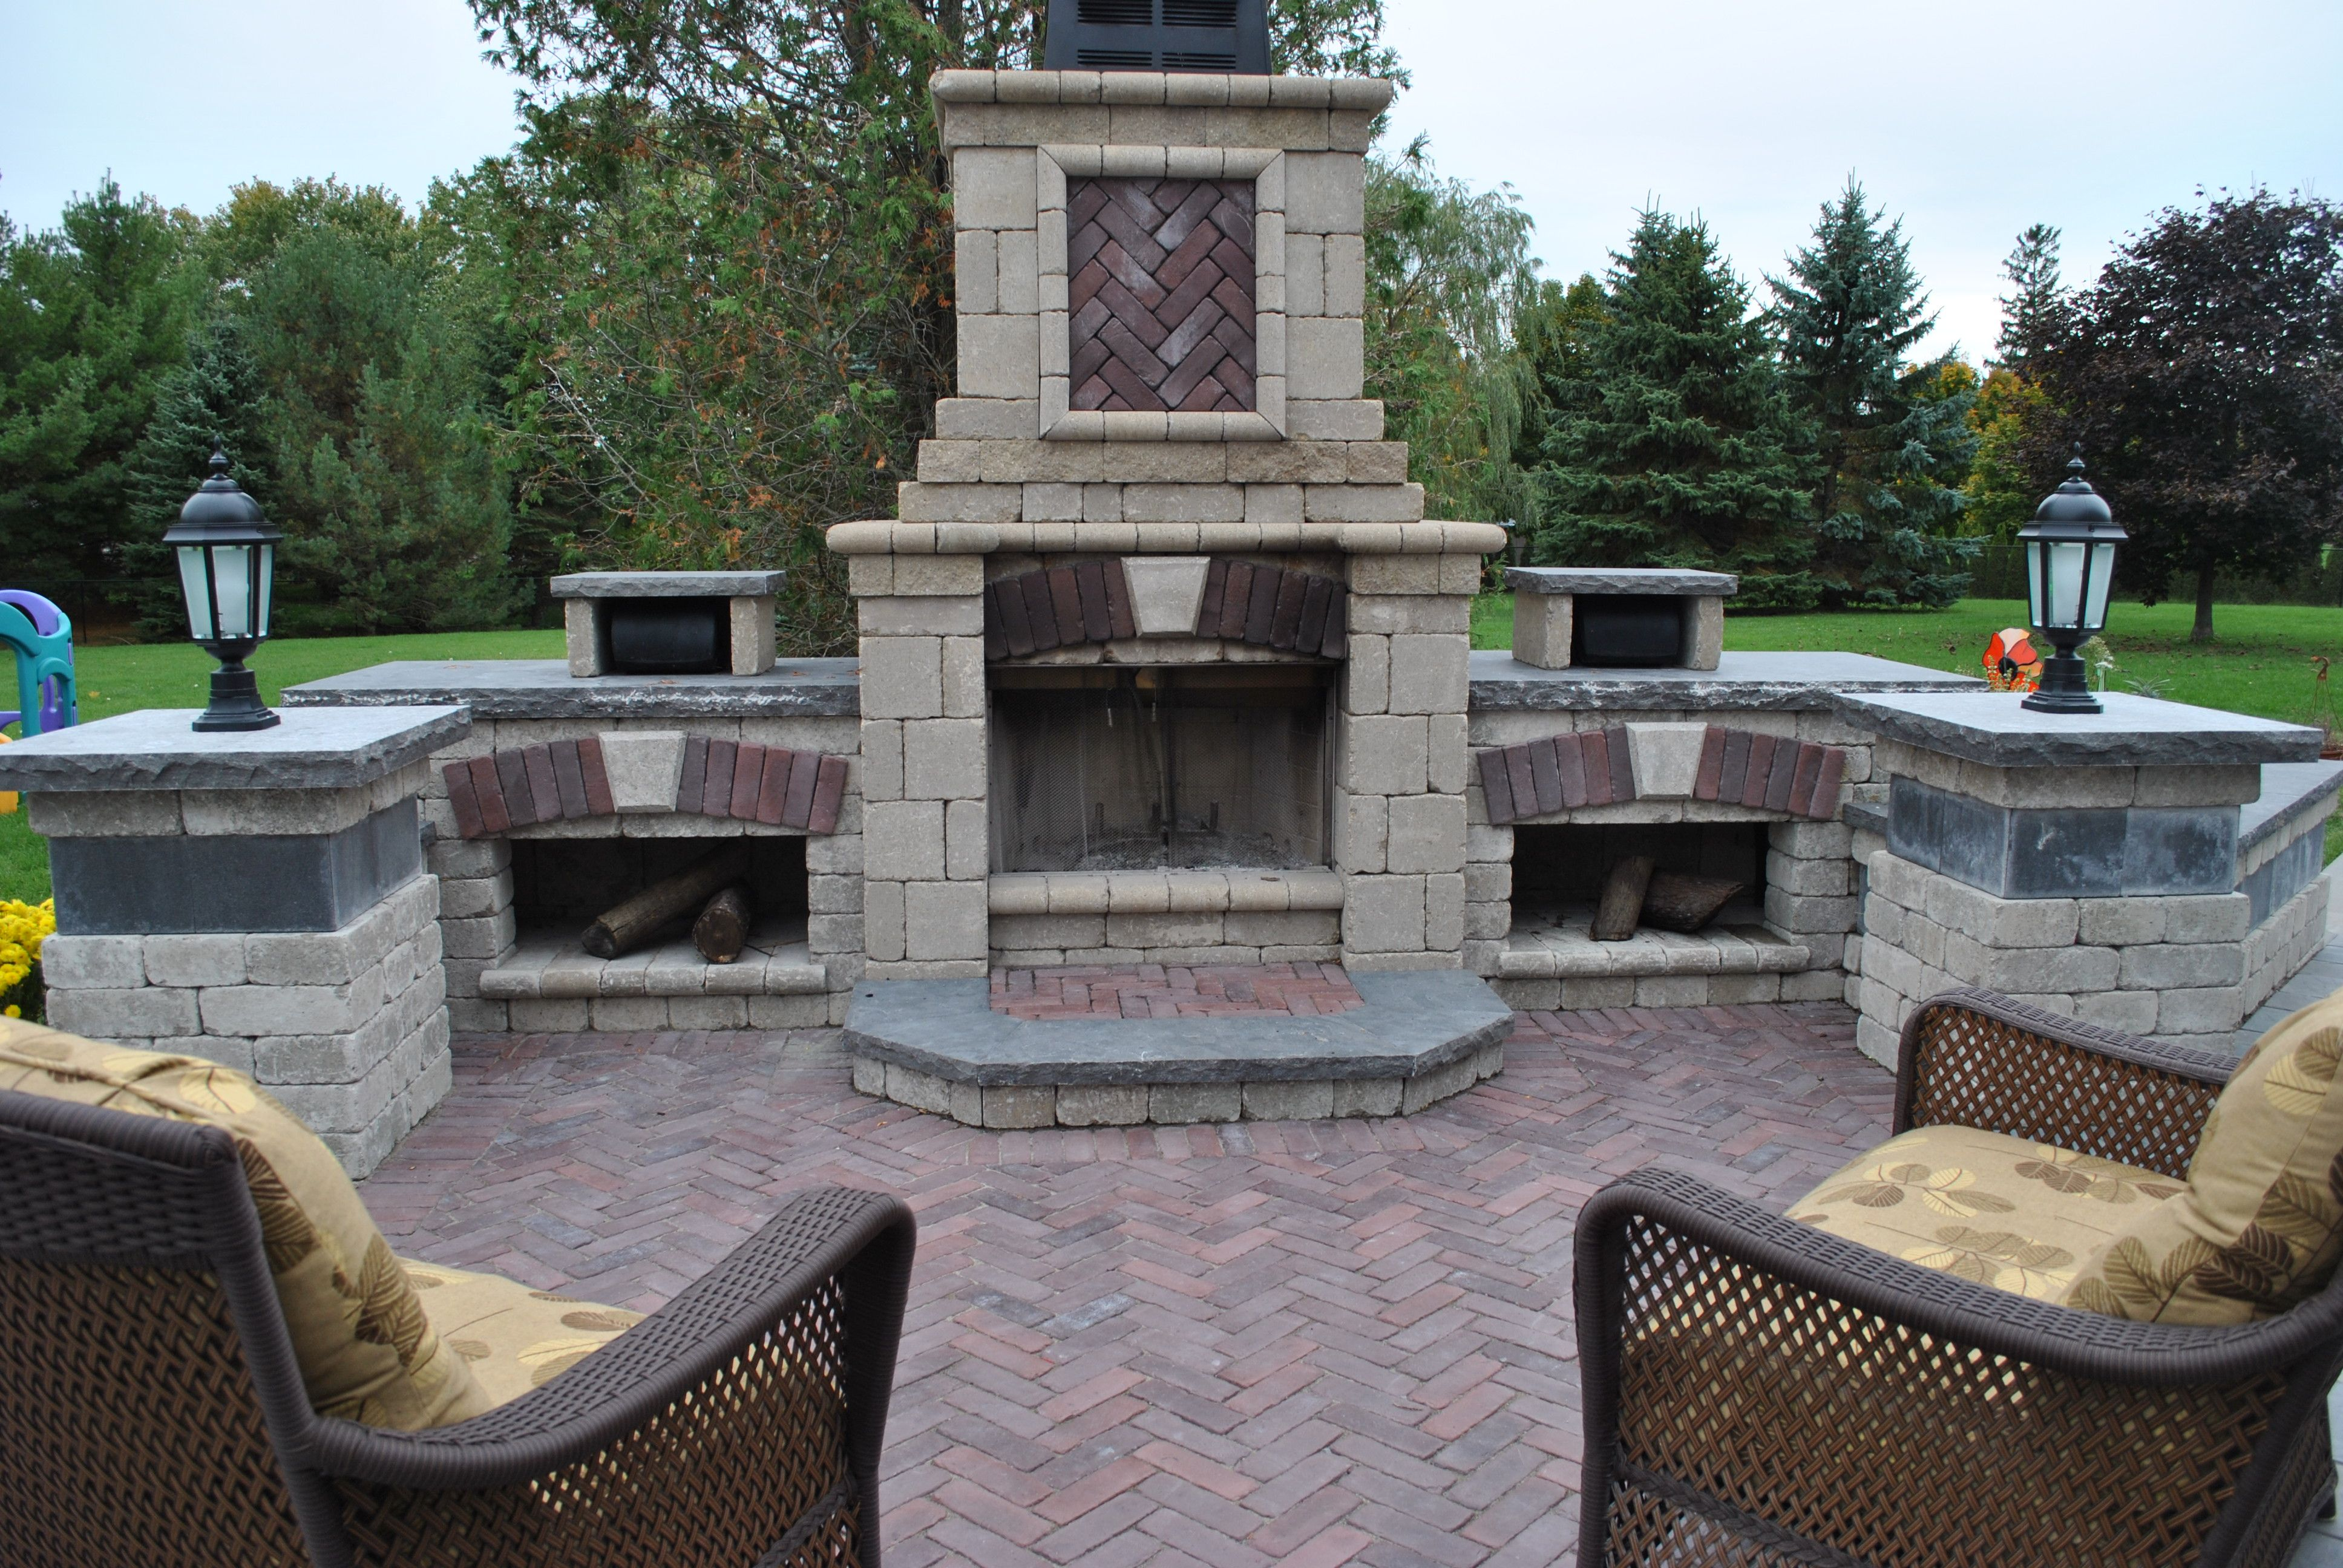 Unilock Tuscany Fireplace Outdoor Patios Pavers Unilock Tuscany Fireplace Copthorne Red Bri Backyard Fireplace Outdoor Fireplace Kits Outdoor Fireplace